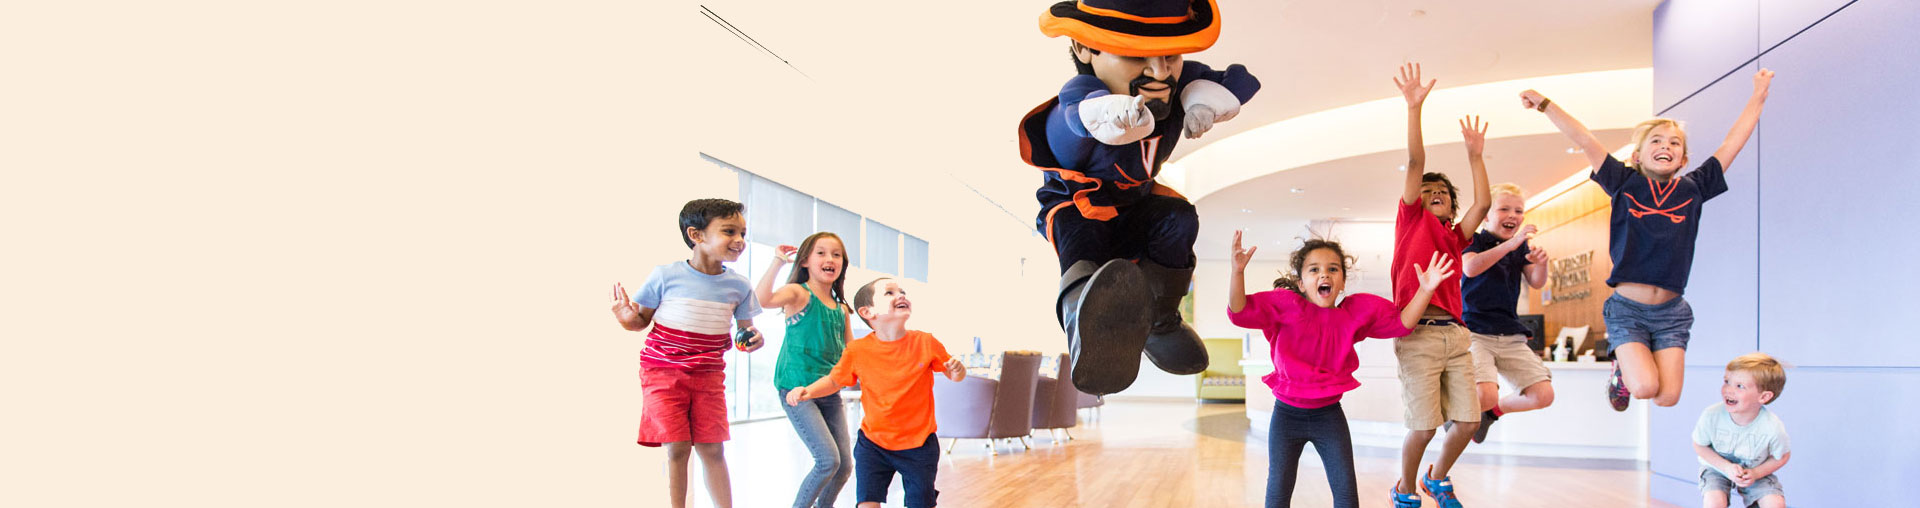 kids play with UVA mascot